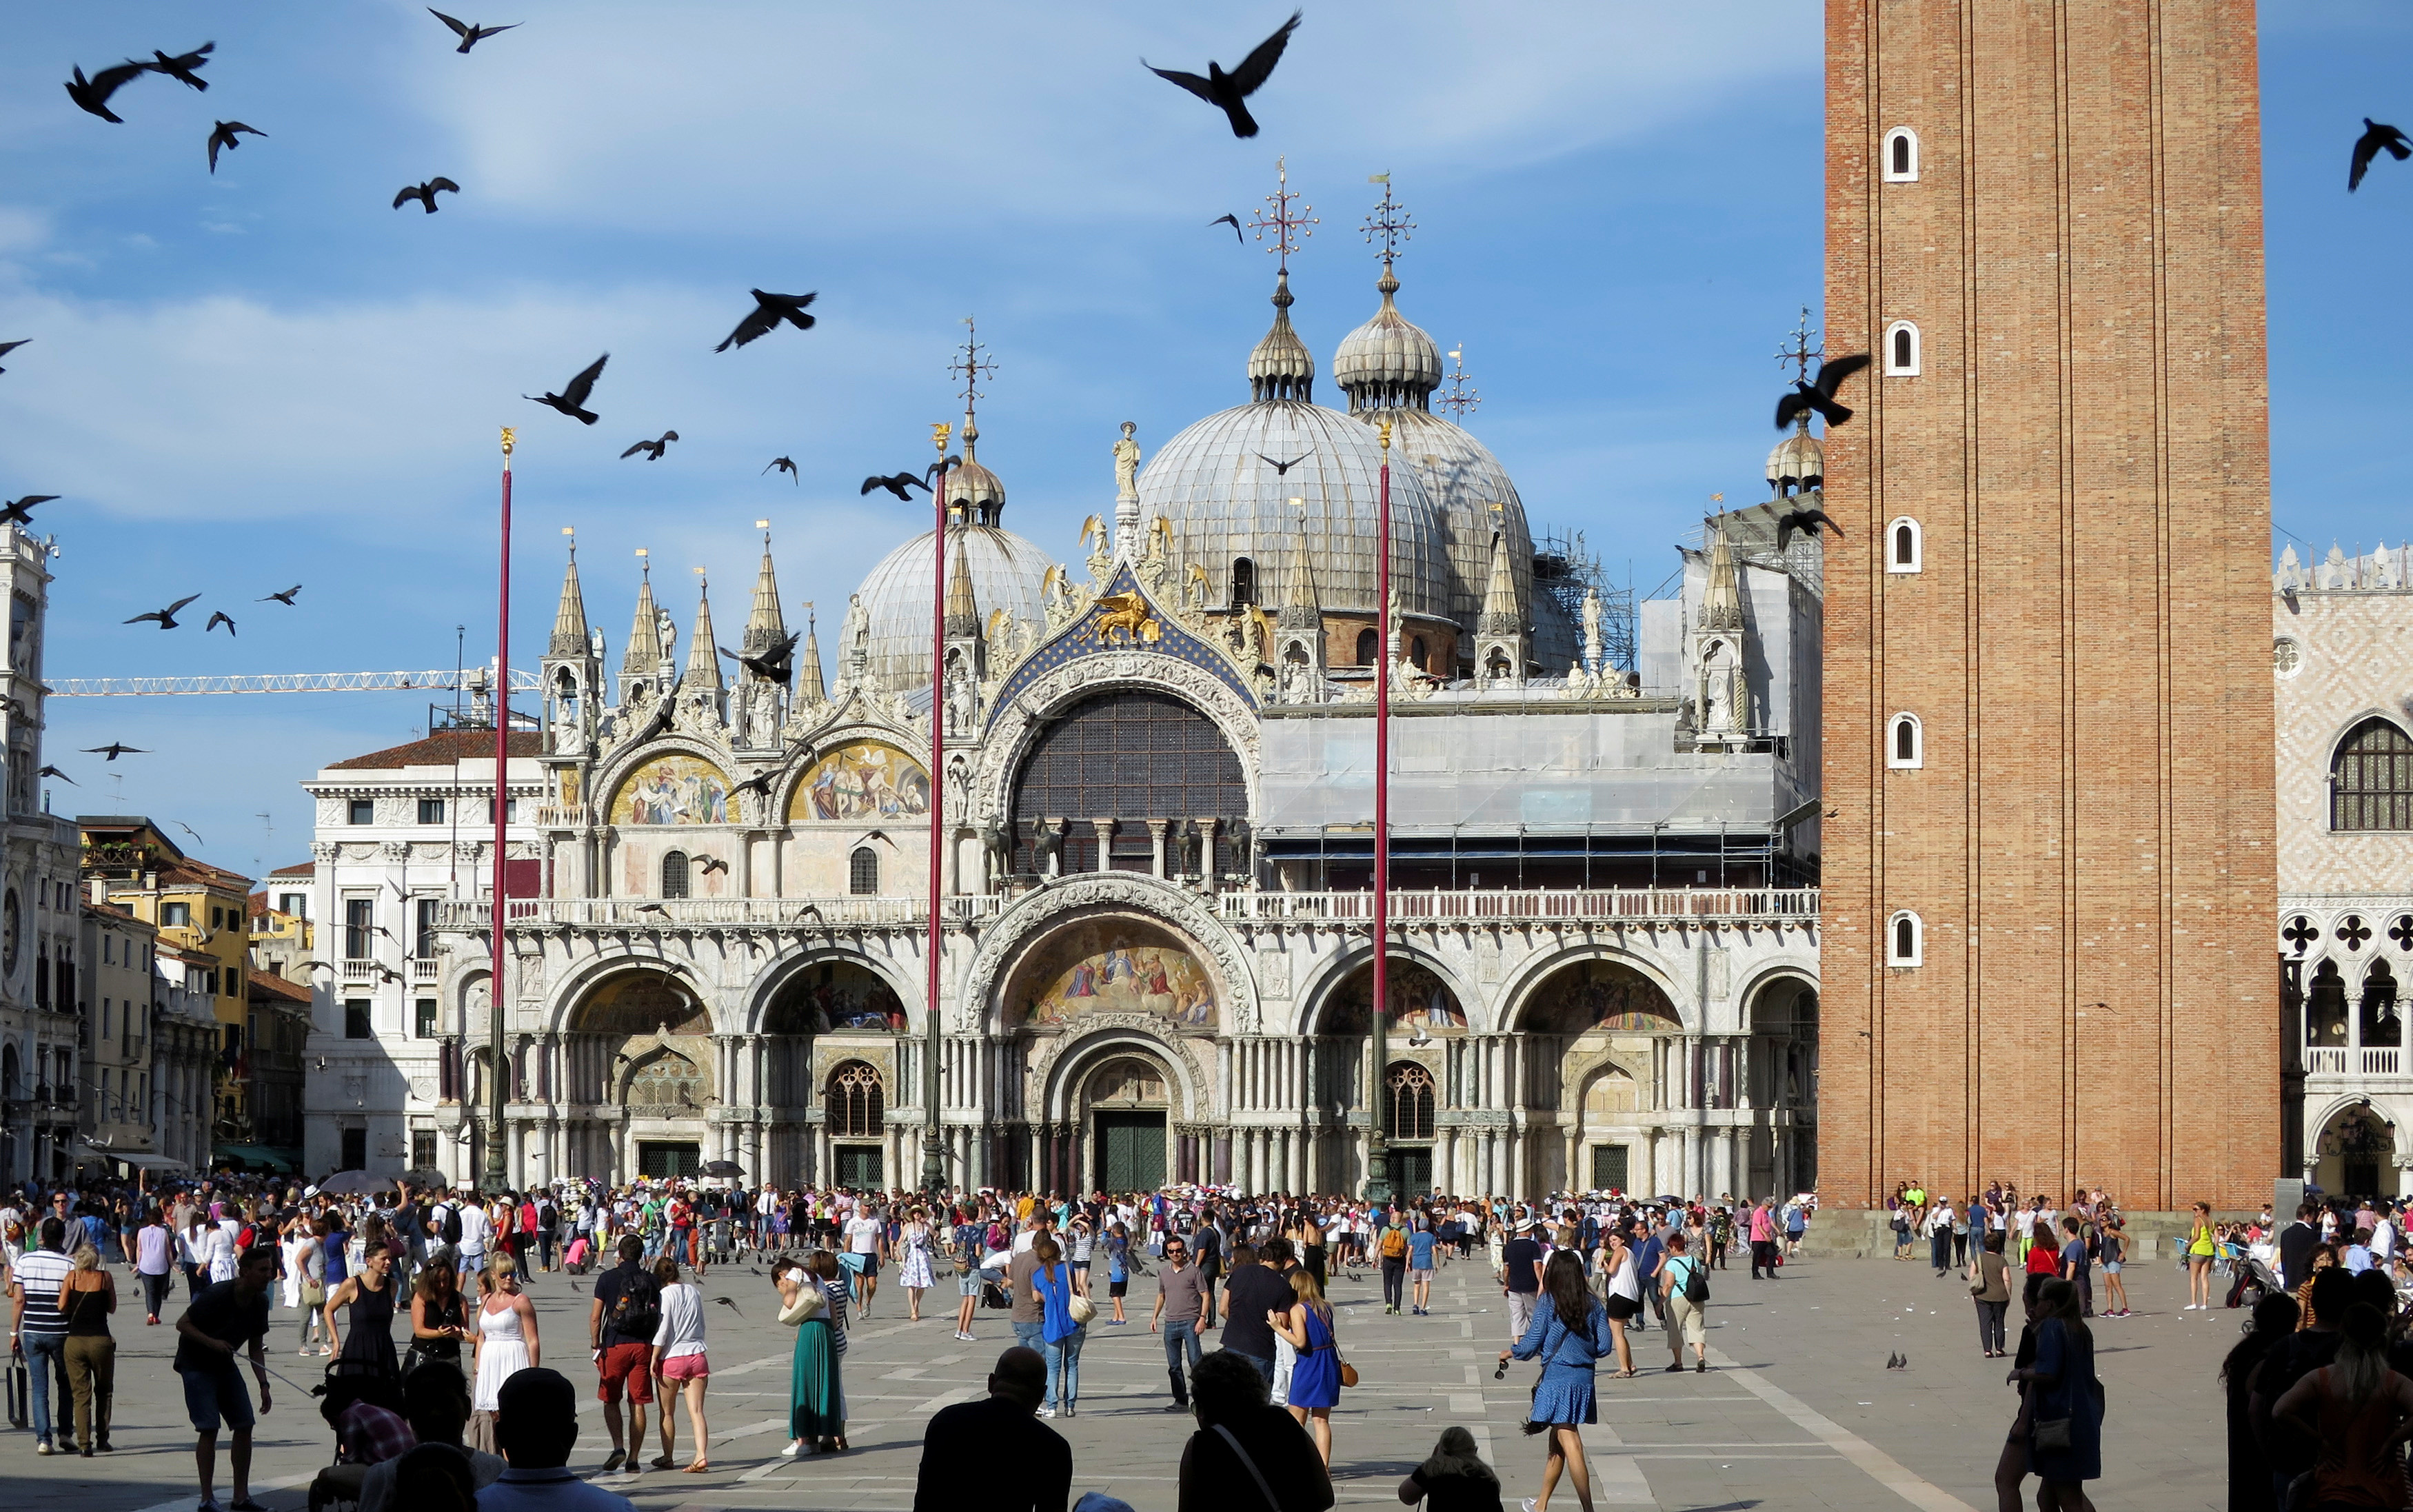 San Marco Dome is seen in the Piazza San Marco (St.Mark's square) in Venice, Italy, June 18, 2016.   REUTERS/Fabrizio Bensch  - D1BETLEGZOAA